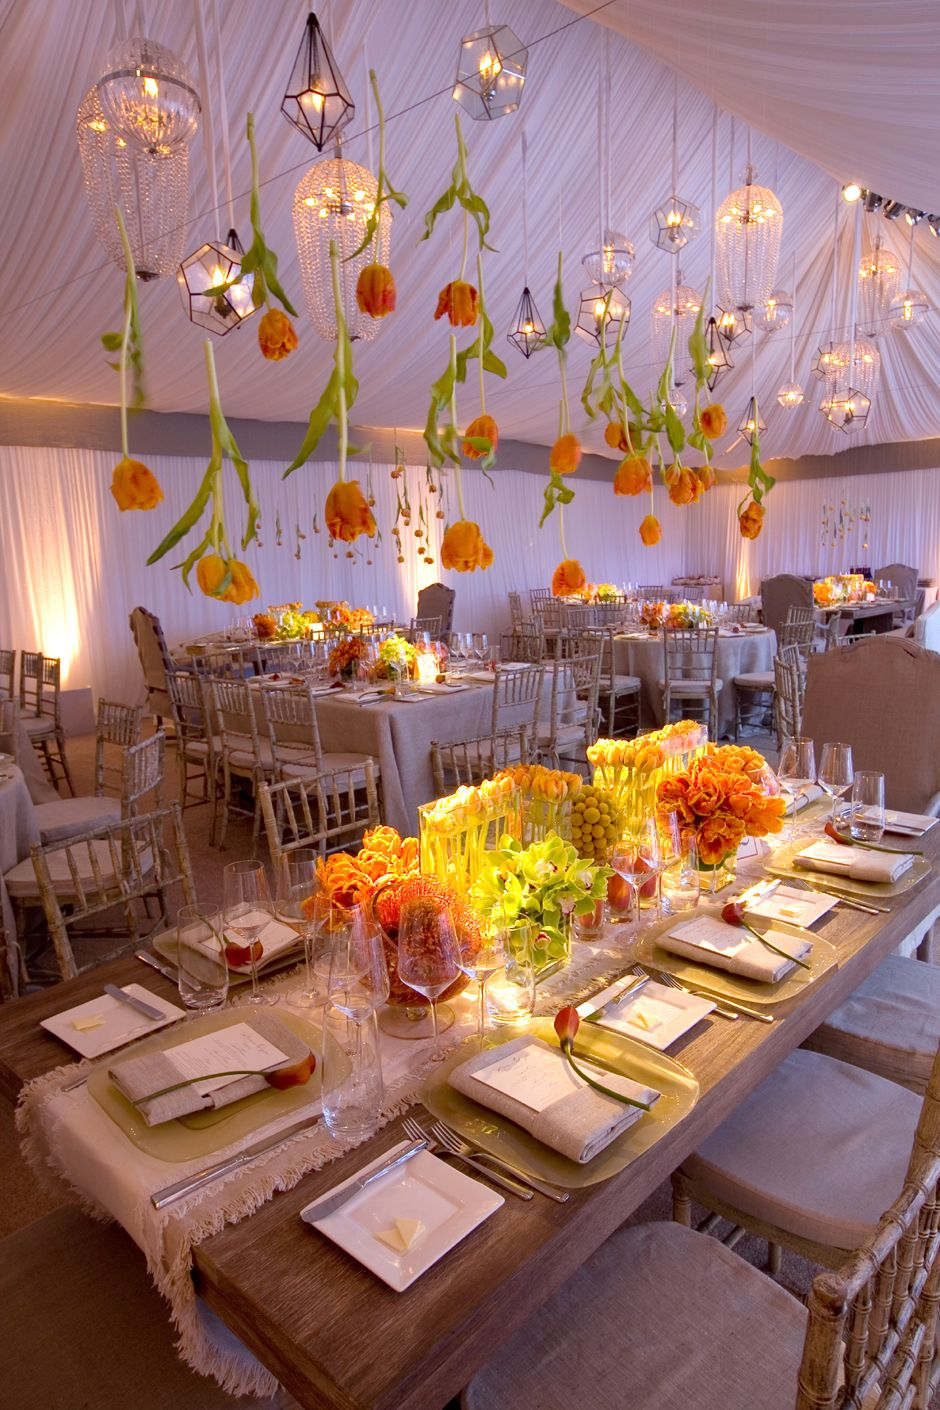 Our Work | Mindy Weiss | Hanging wedding decorations, Hanging flowers, Wedding  decorations